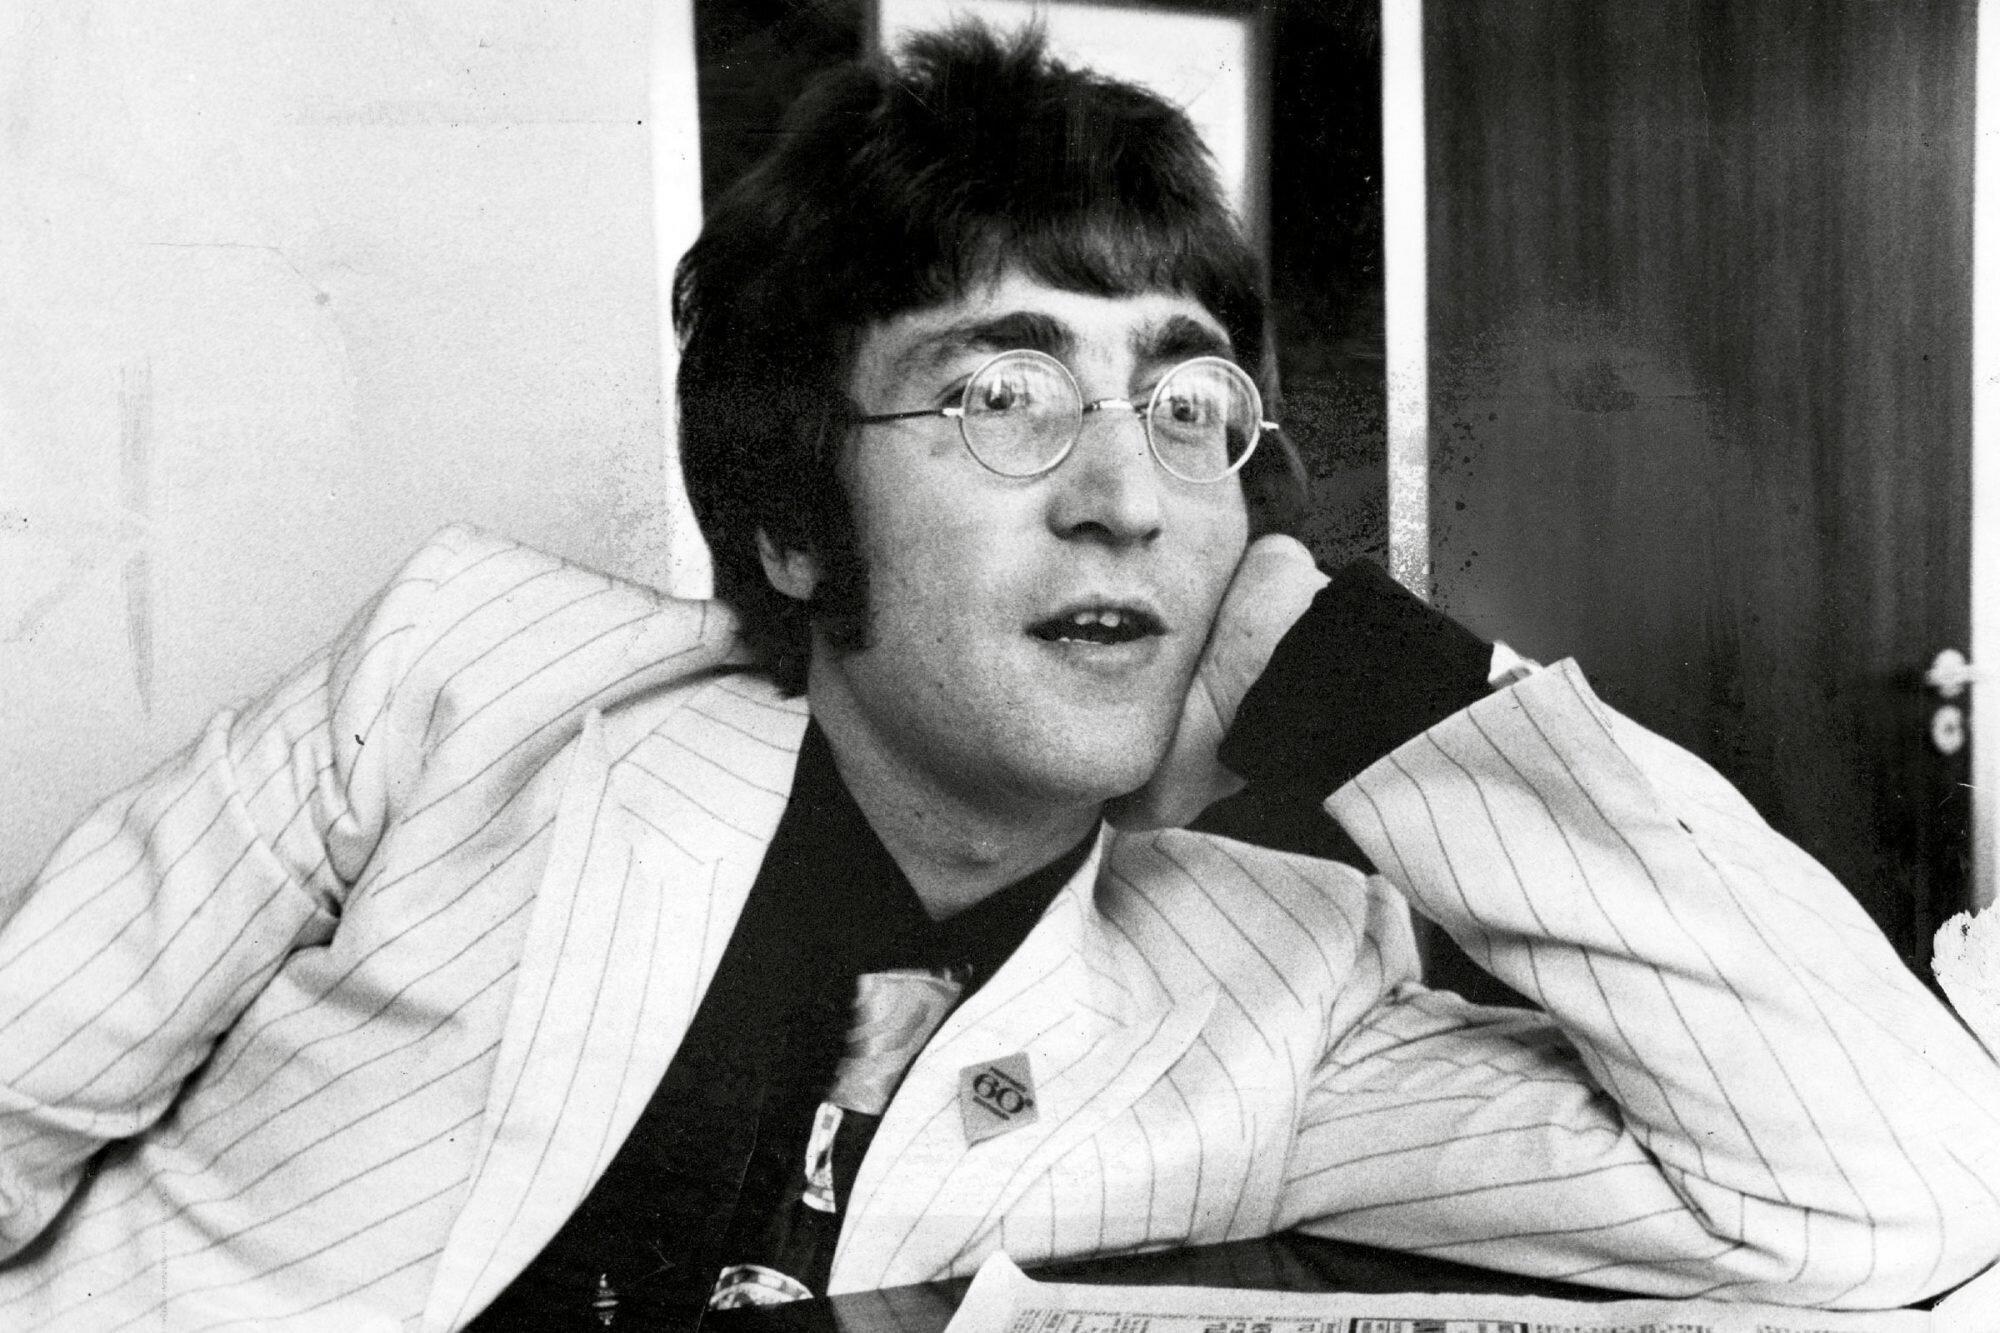 John Lennon S Iconic Round Spectacles Sell For 57 000 In Rare Beatles Auction